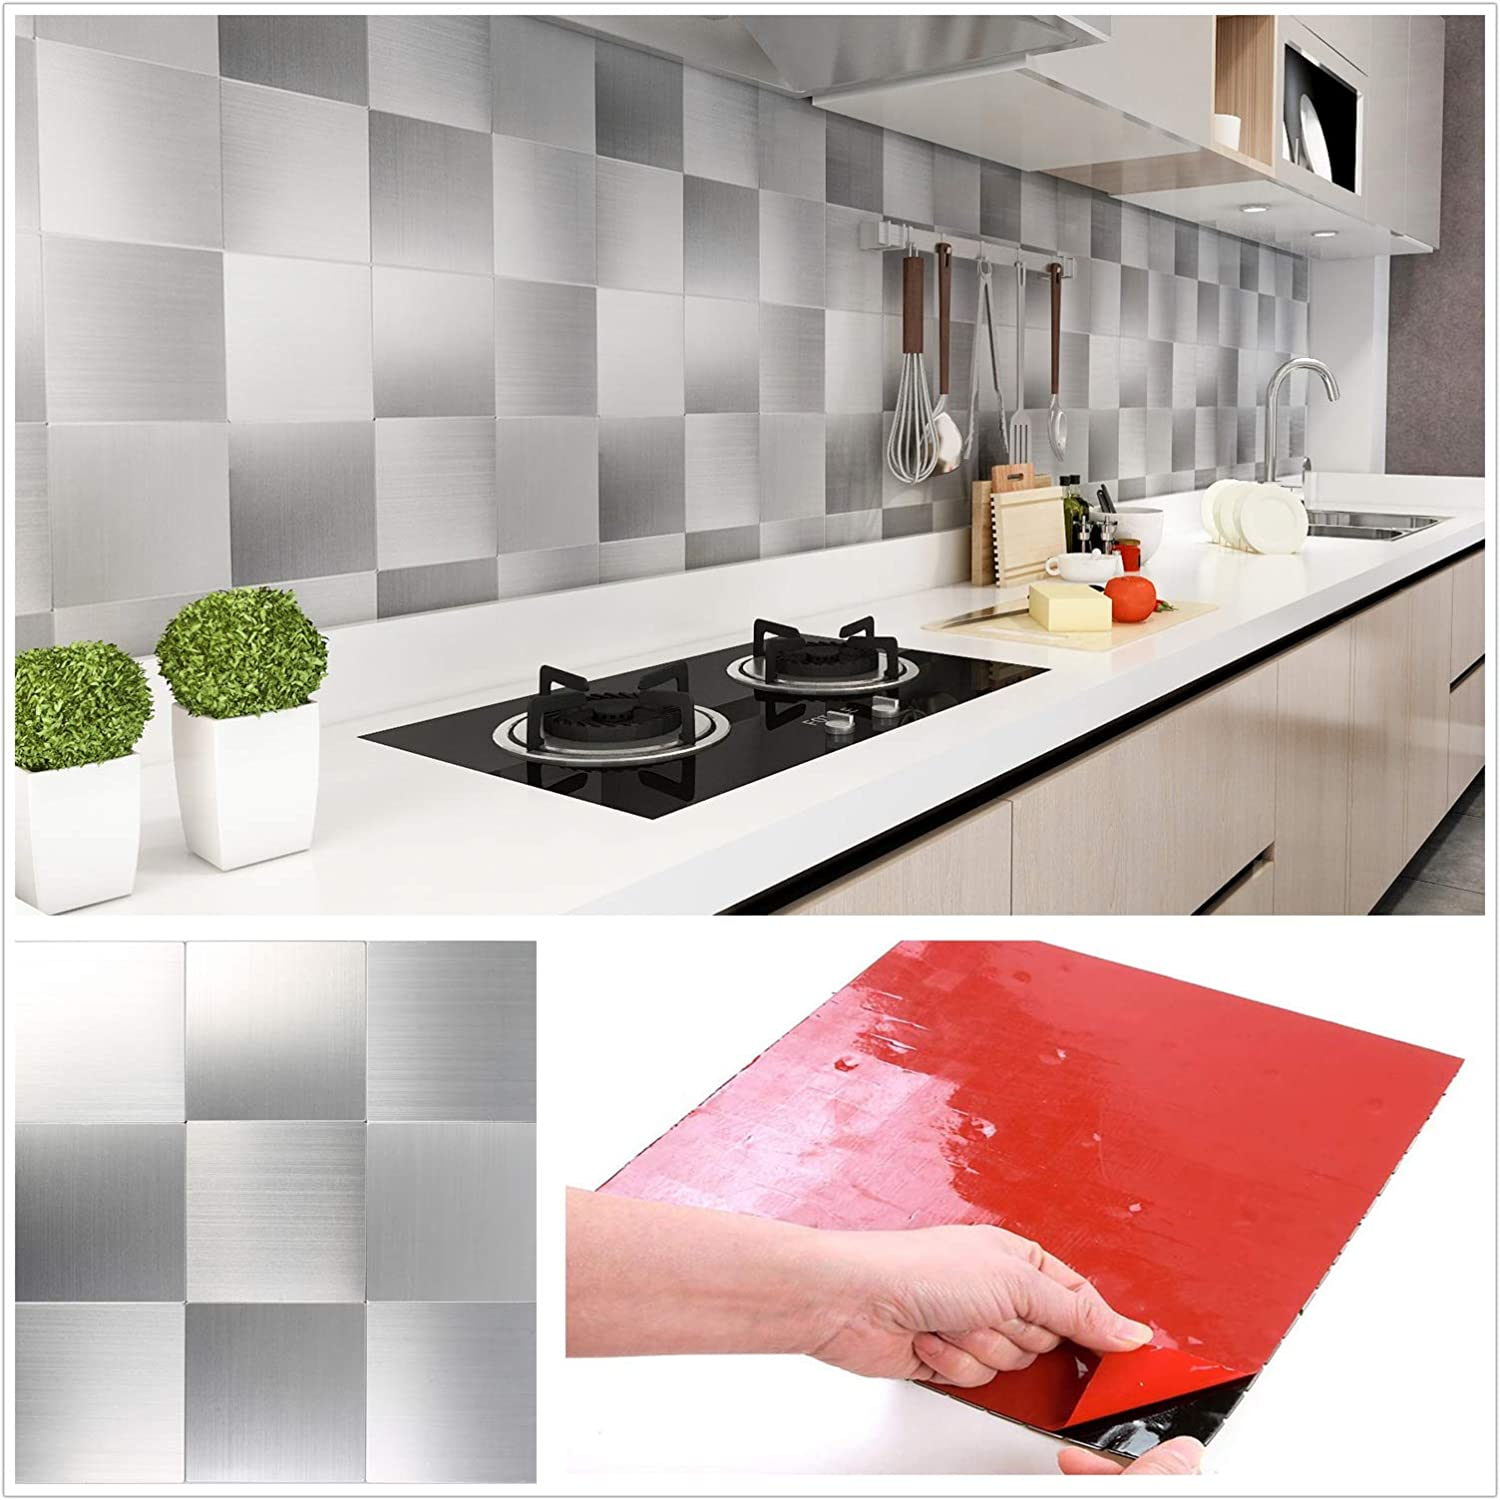 Amazon Com Homeymosaic Peel And Stick Tile Backsplash Stainless Steel Stick On Tiles For Kitchen Wall Decor Aluminum Surface Metal Tile Silver Square Plaid 12 X12 X 5 Sheets Home Improvement